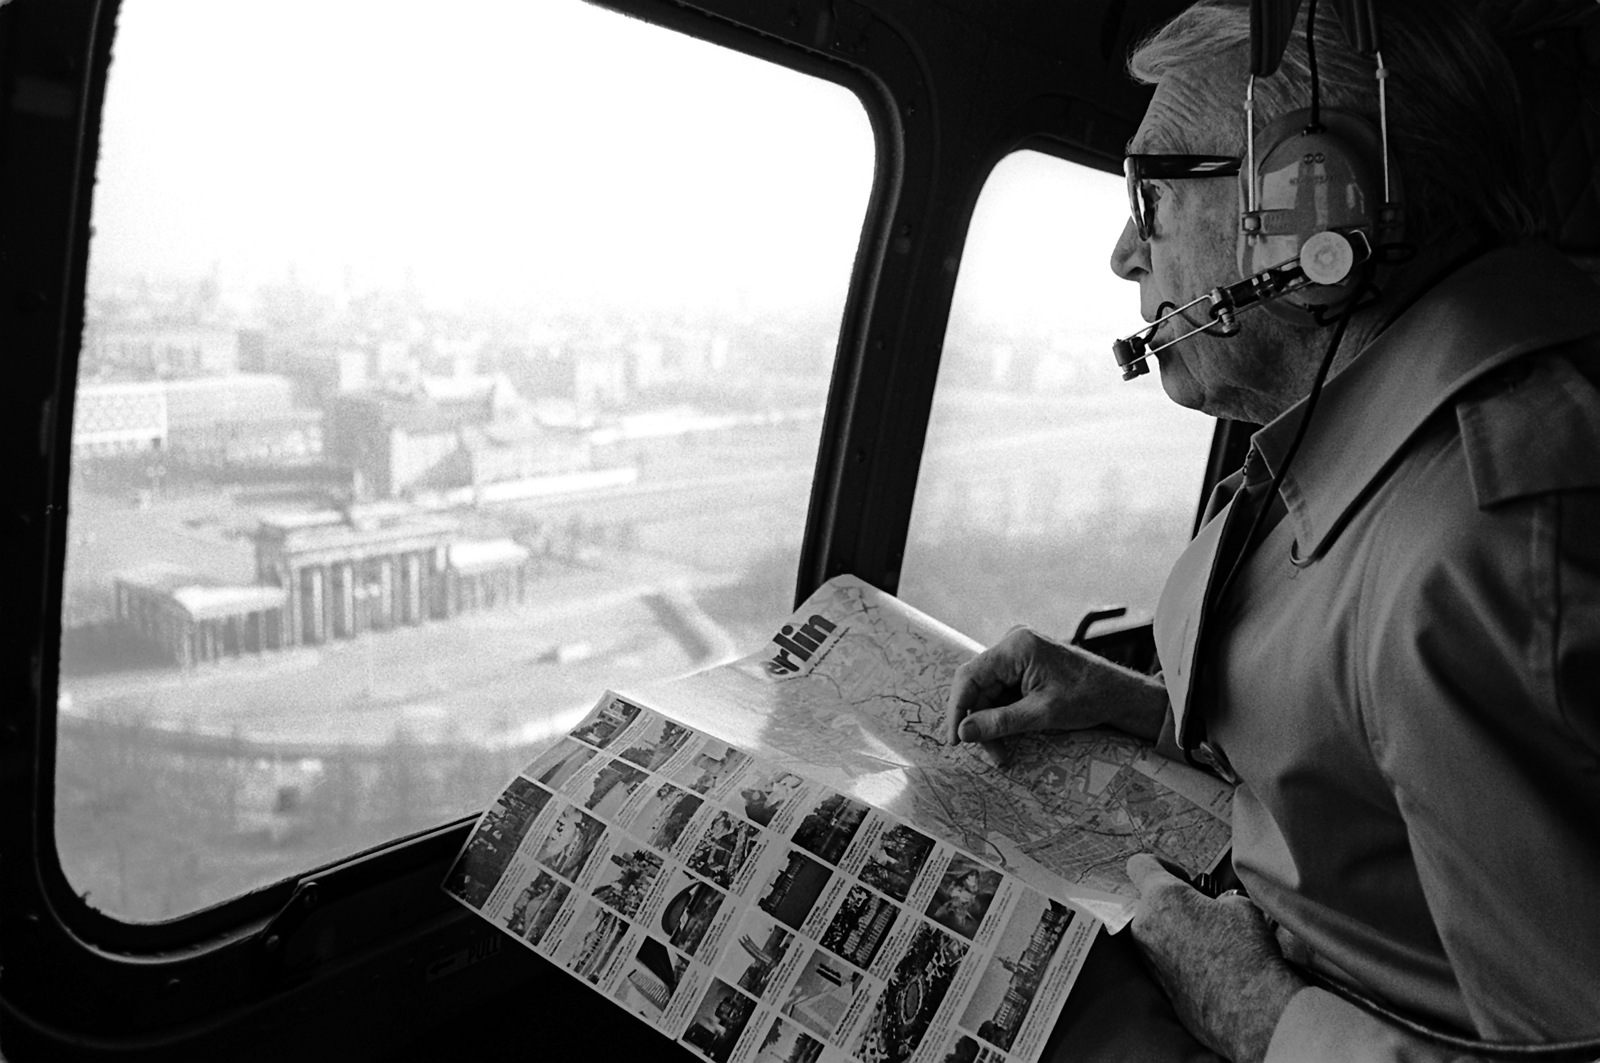 BGEN James Stewart, U.S. Air Force Reserve, views the Brandenburg Gate from a helicopter during his visit to the Tempelhof Central Airport